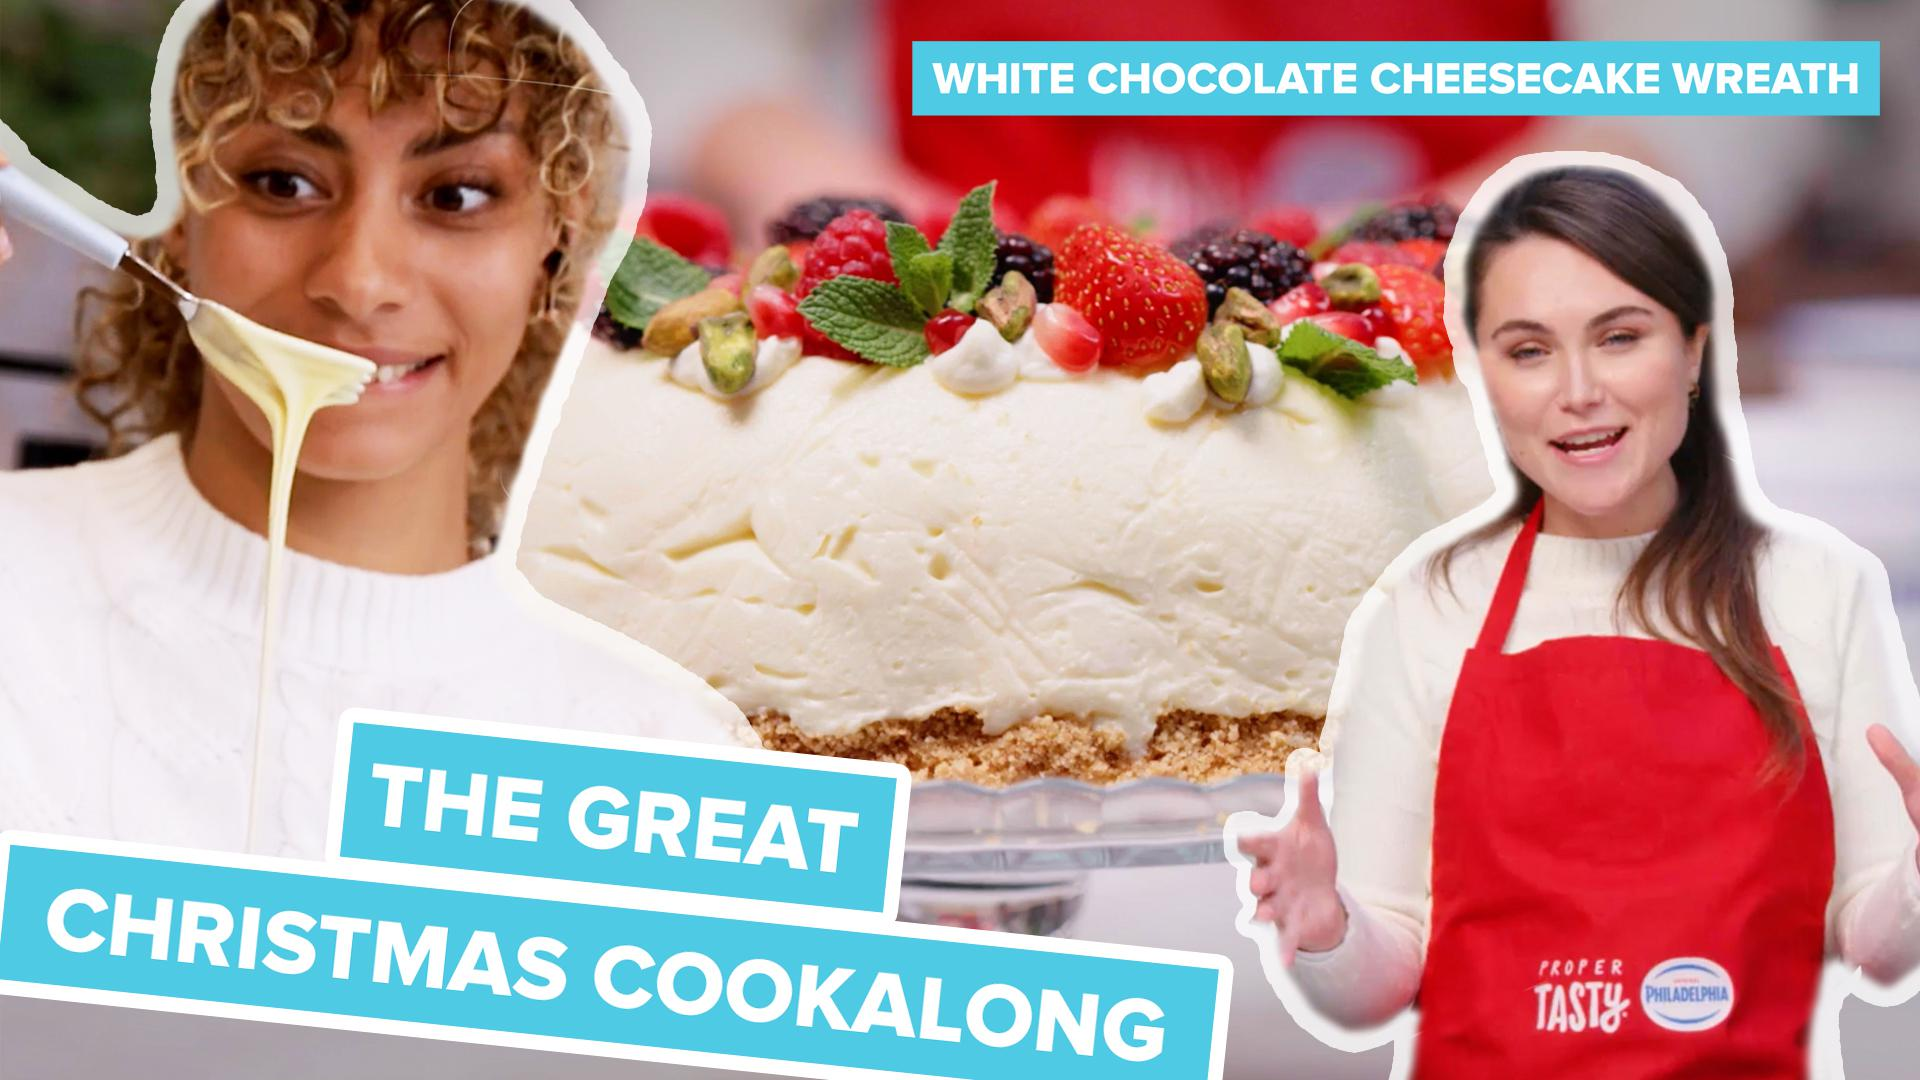 Proper Tasty The Great Christmas Cook Along Philadelphia White Chocolate Cheesecake Wreath